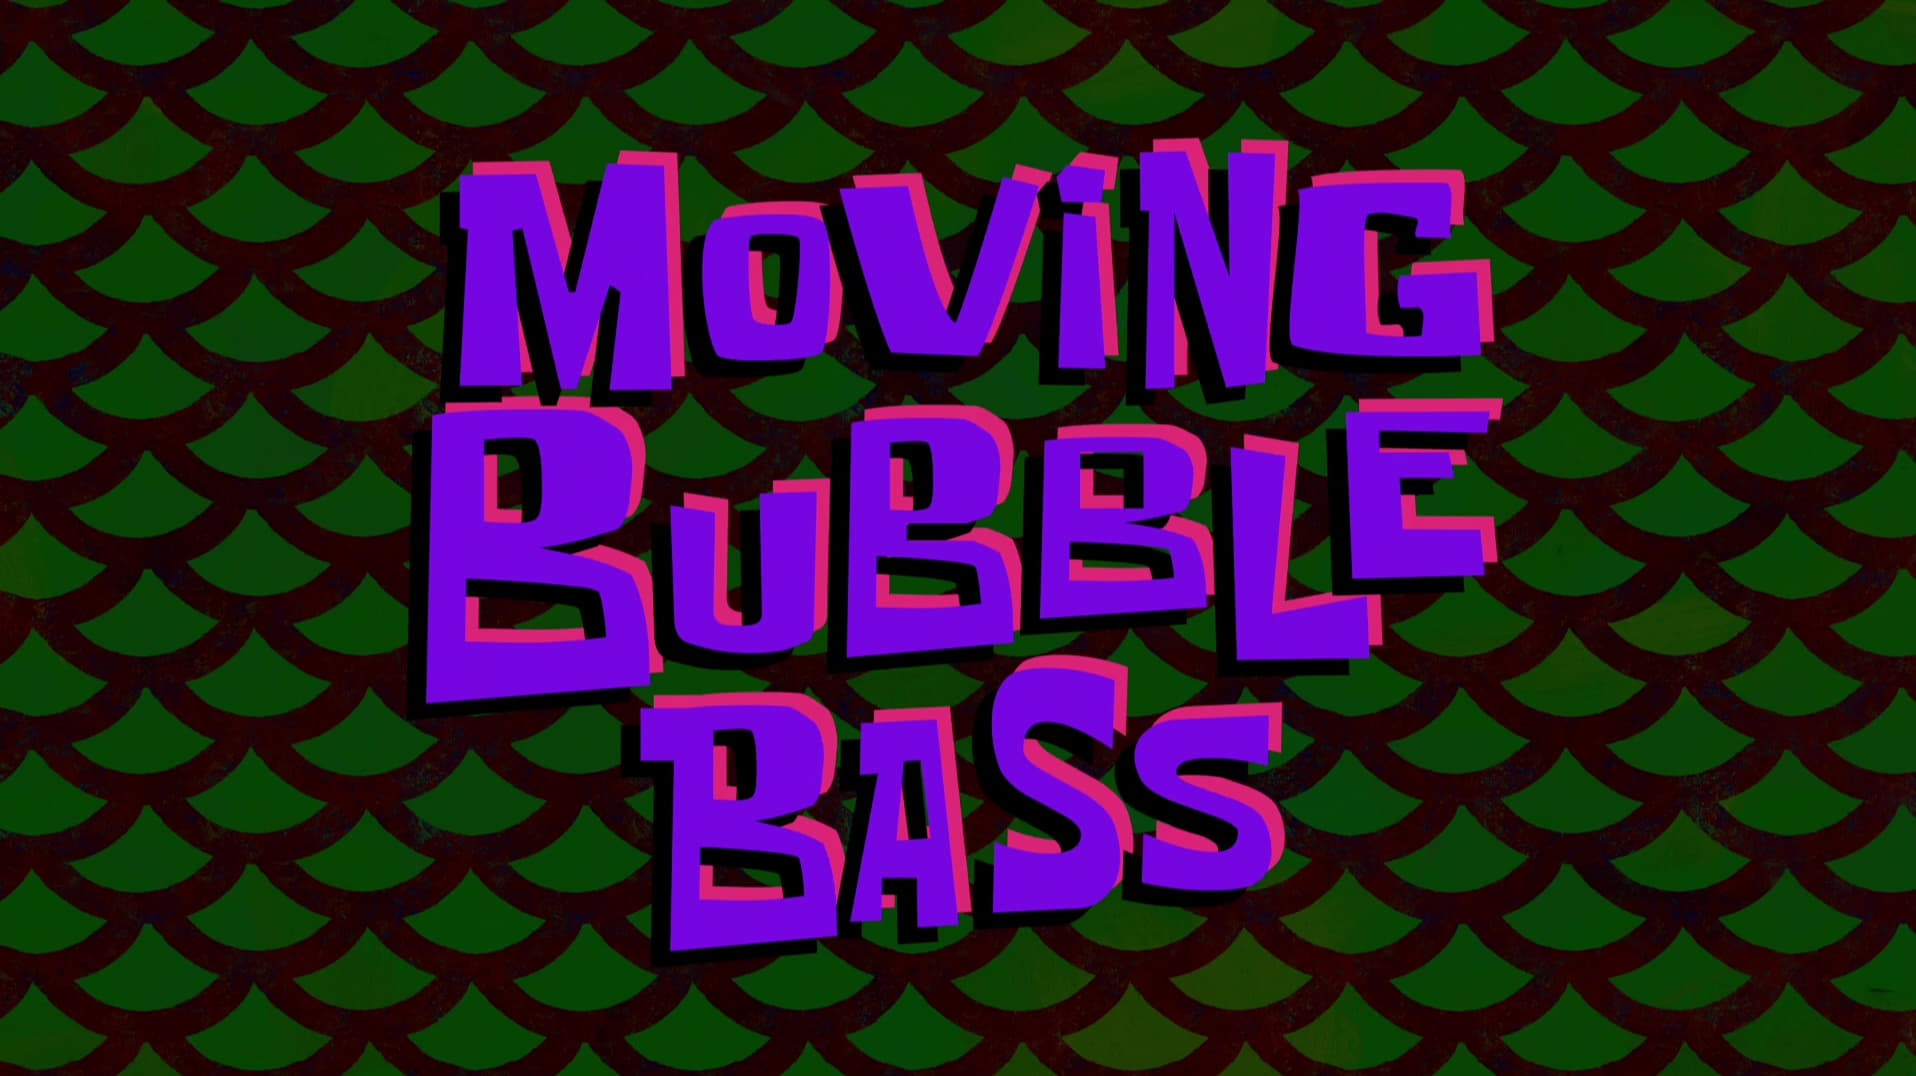 SpongeBob SquarePants - Season 11 Episode 27 : Moving Bubble Bass